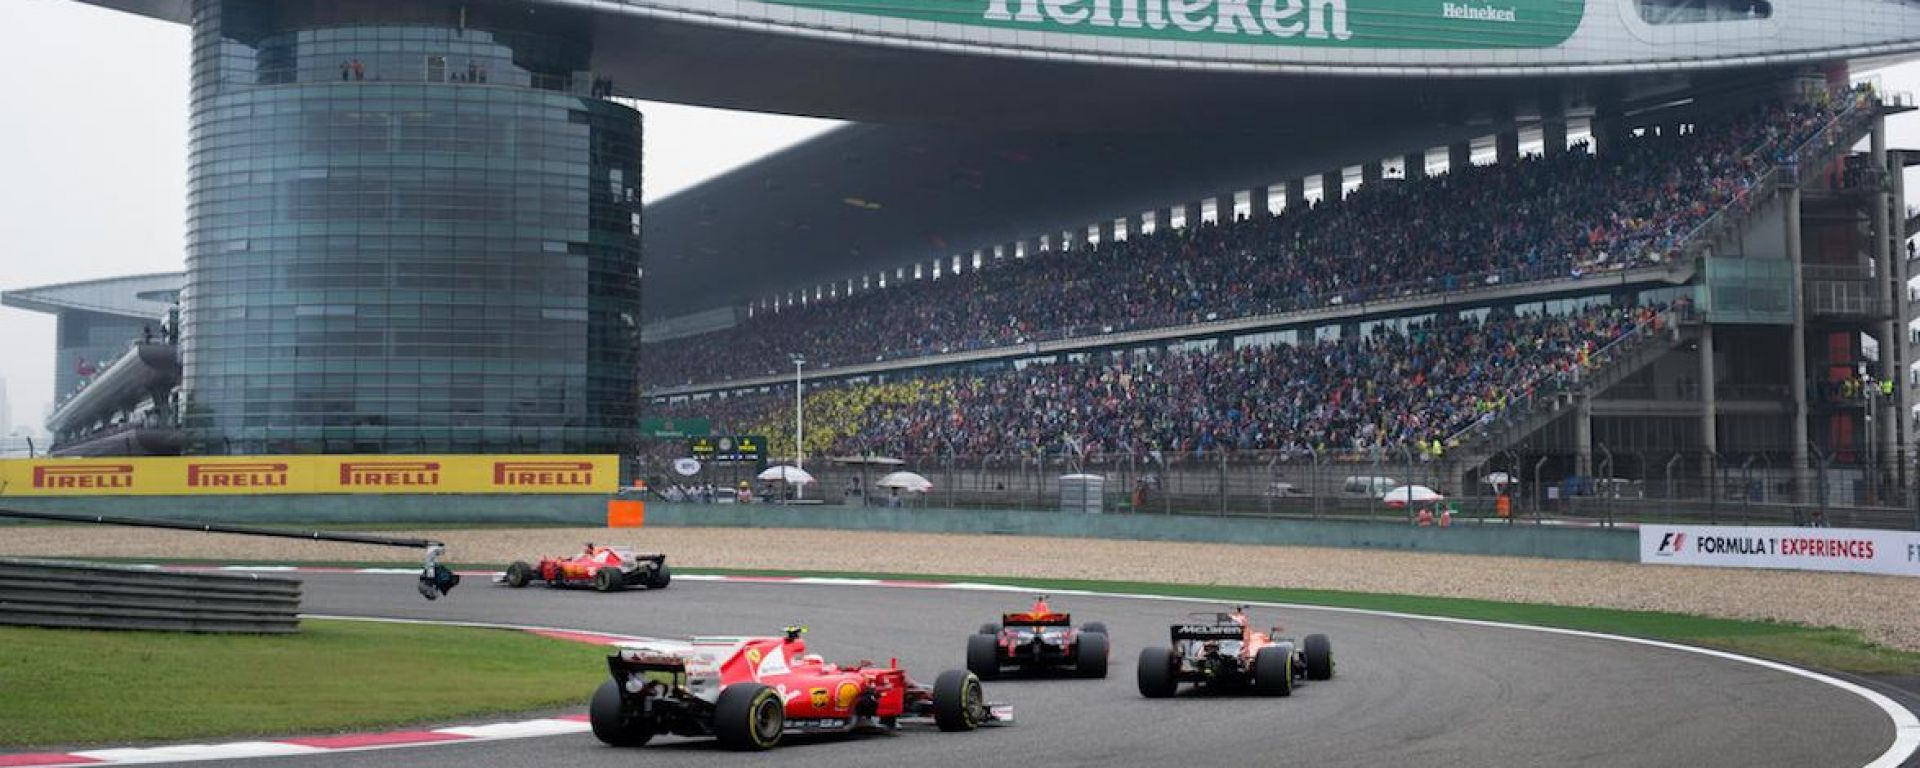 F1, un secondo GP in Cina? Liberty Media non lo esclude